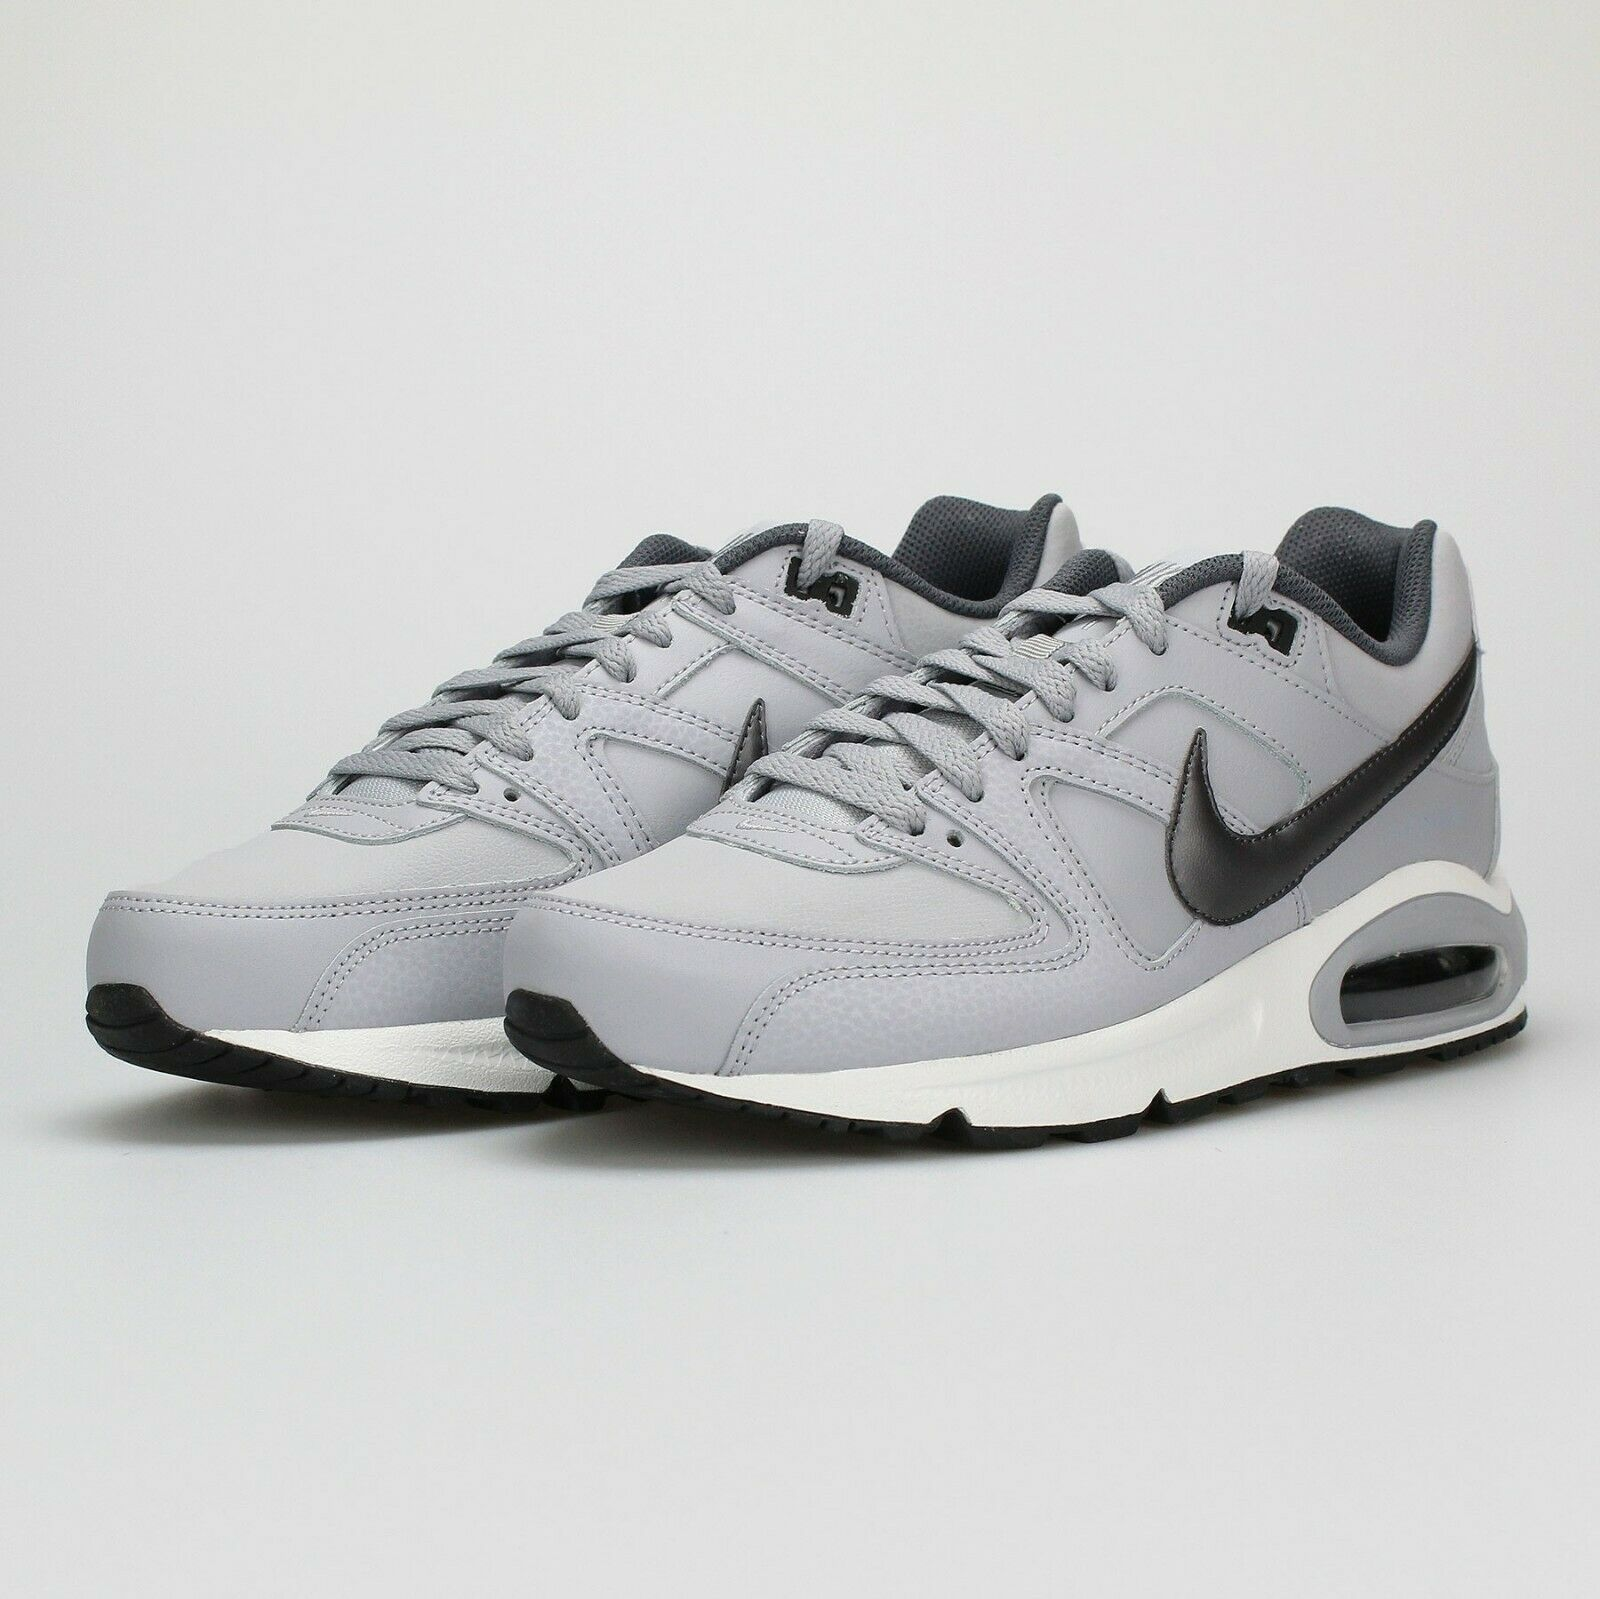 NIKE AIR MAX COMMAND 749760-012 GREY SIZE 13 USA SIZE 12 UK 47.5 EU NEW DS